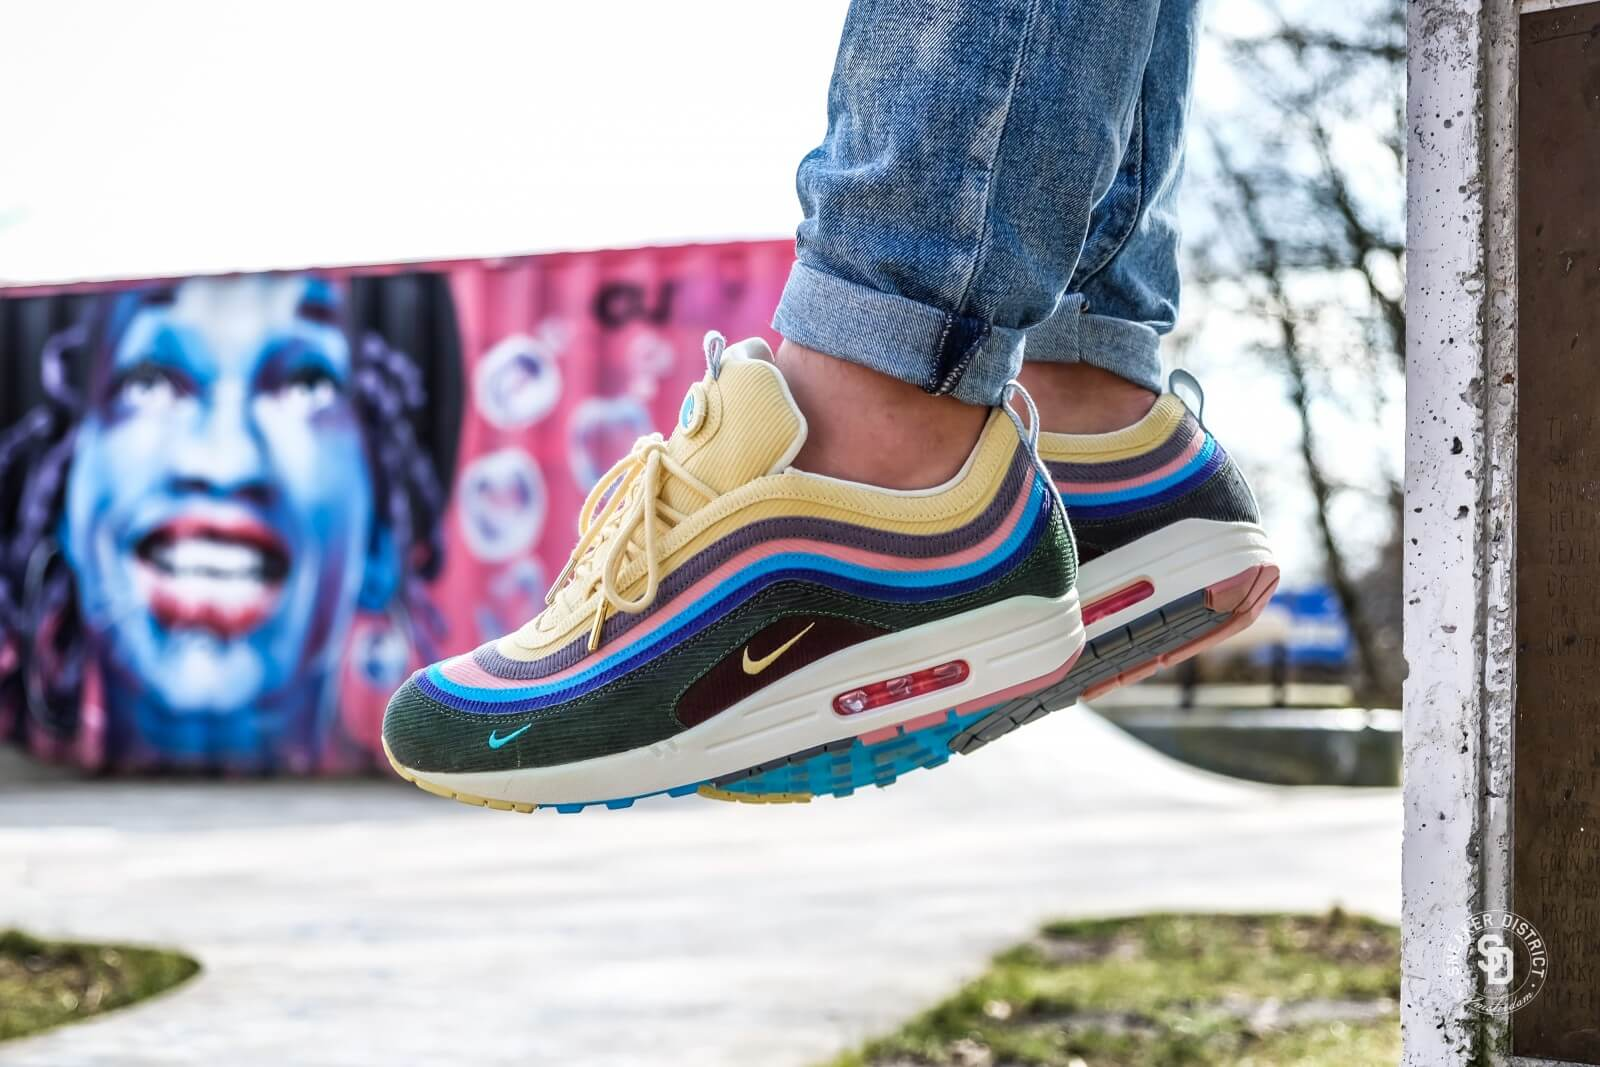 Nike Air Max 197 Vote Forward Sean Wotherspoon AJ4219 400